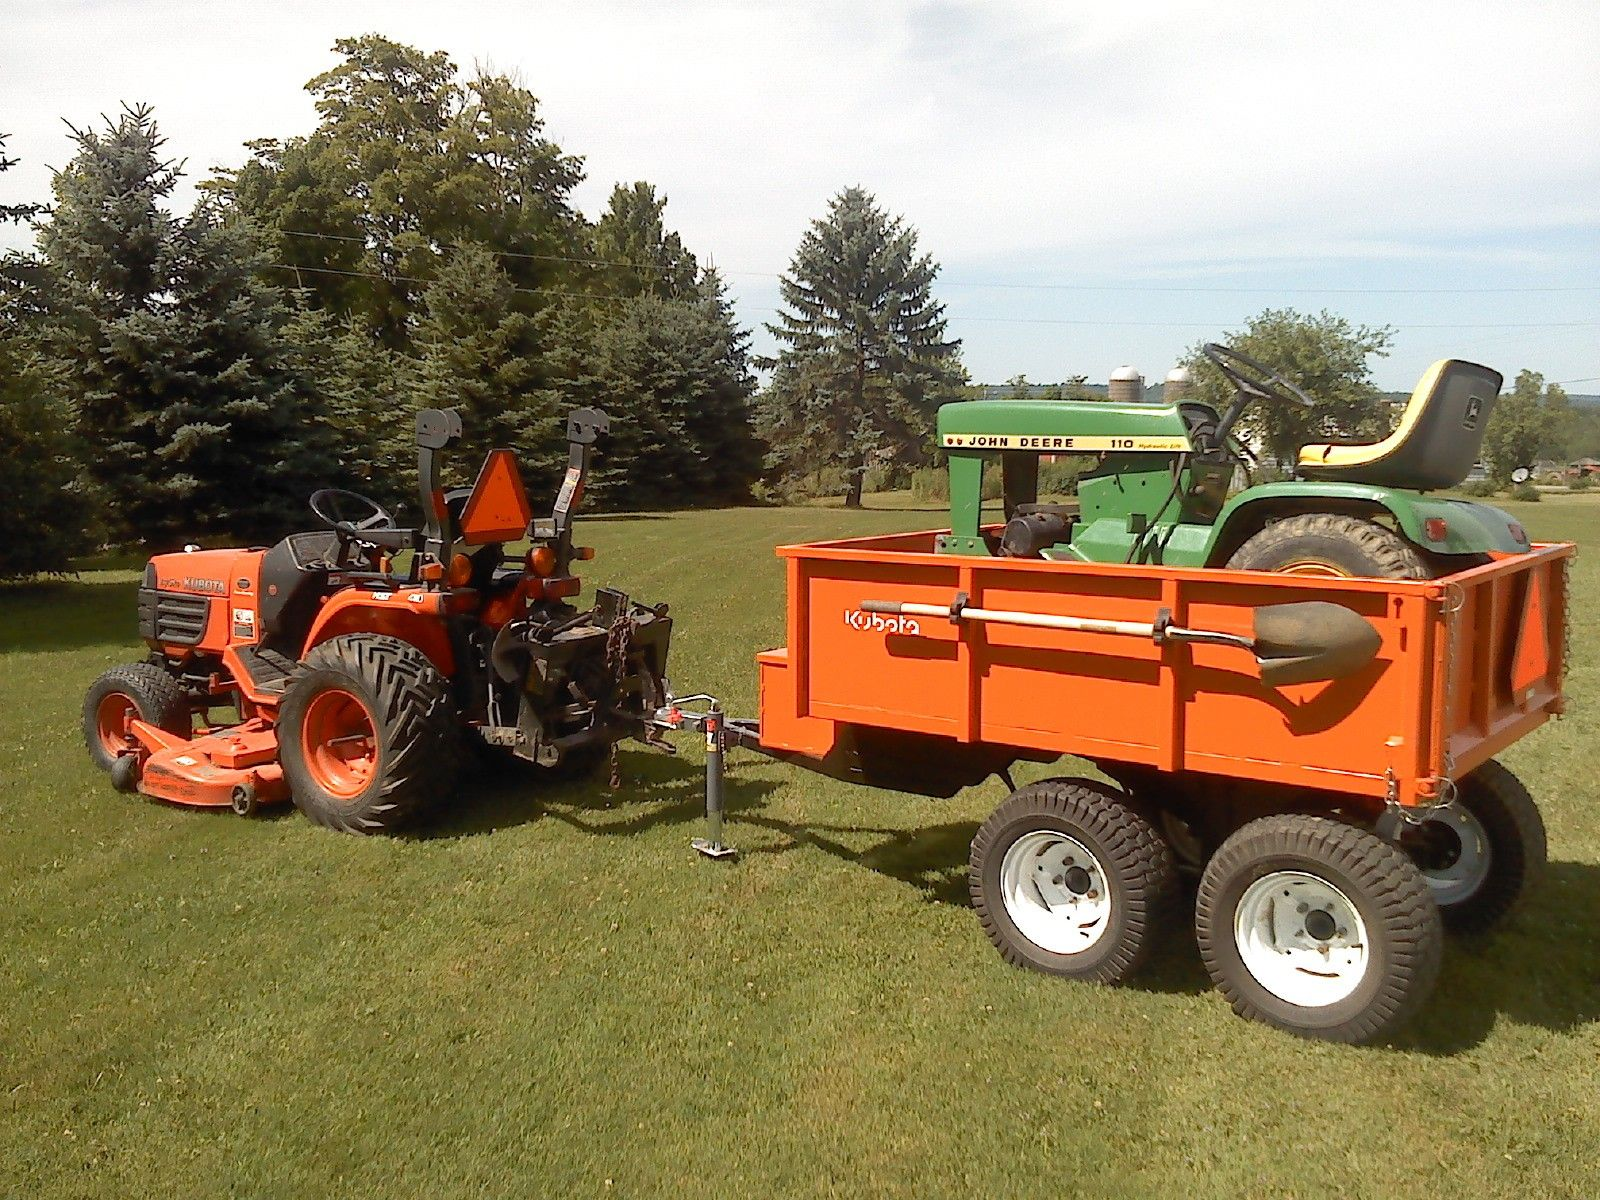 Show home build gas powered mini tractors - Dump Trailer By 600rider Homemade Dump Trailer Constructed From Automotive Hubs A Walking